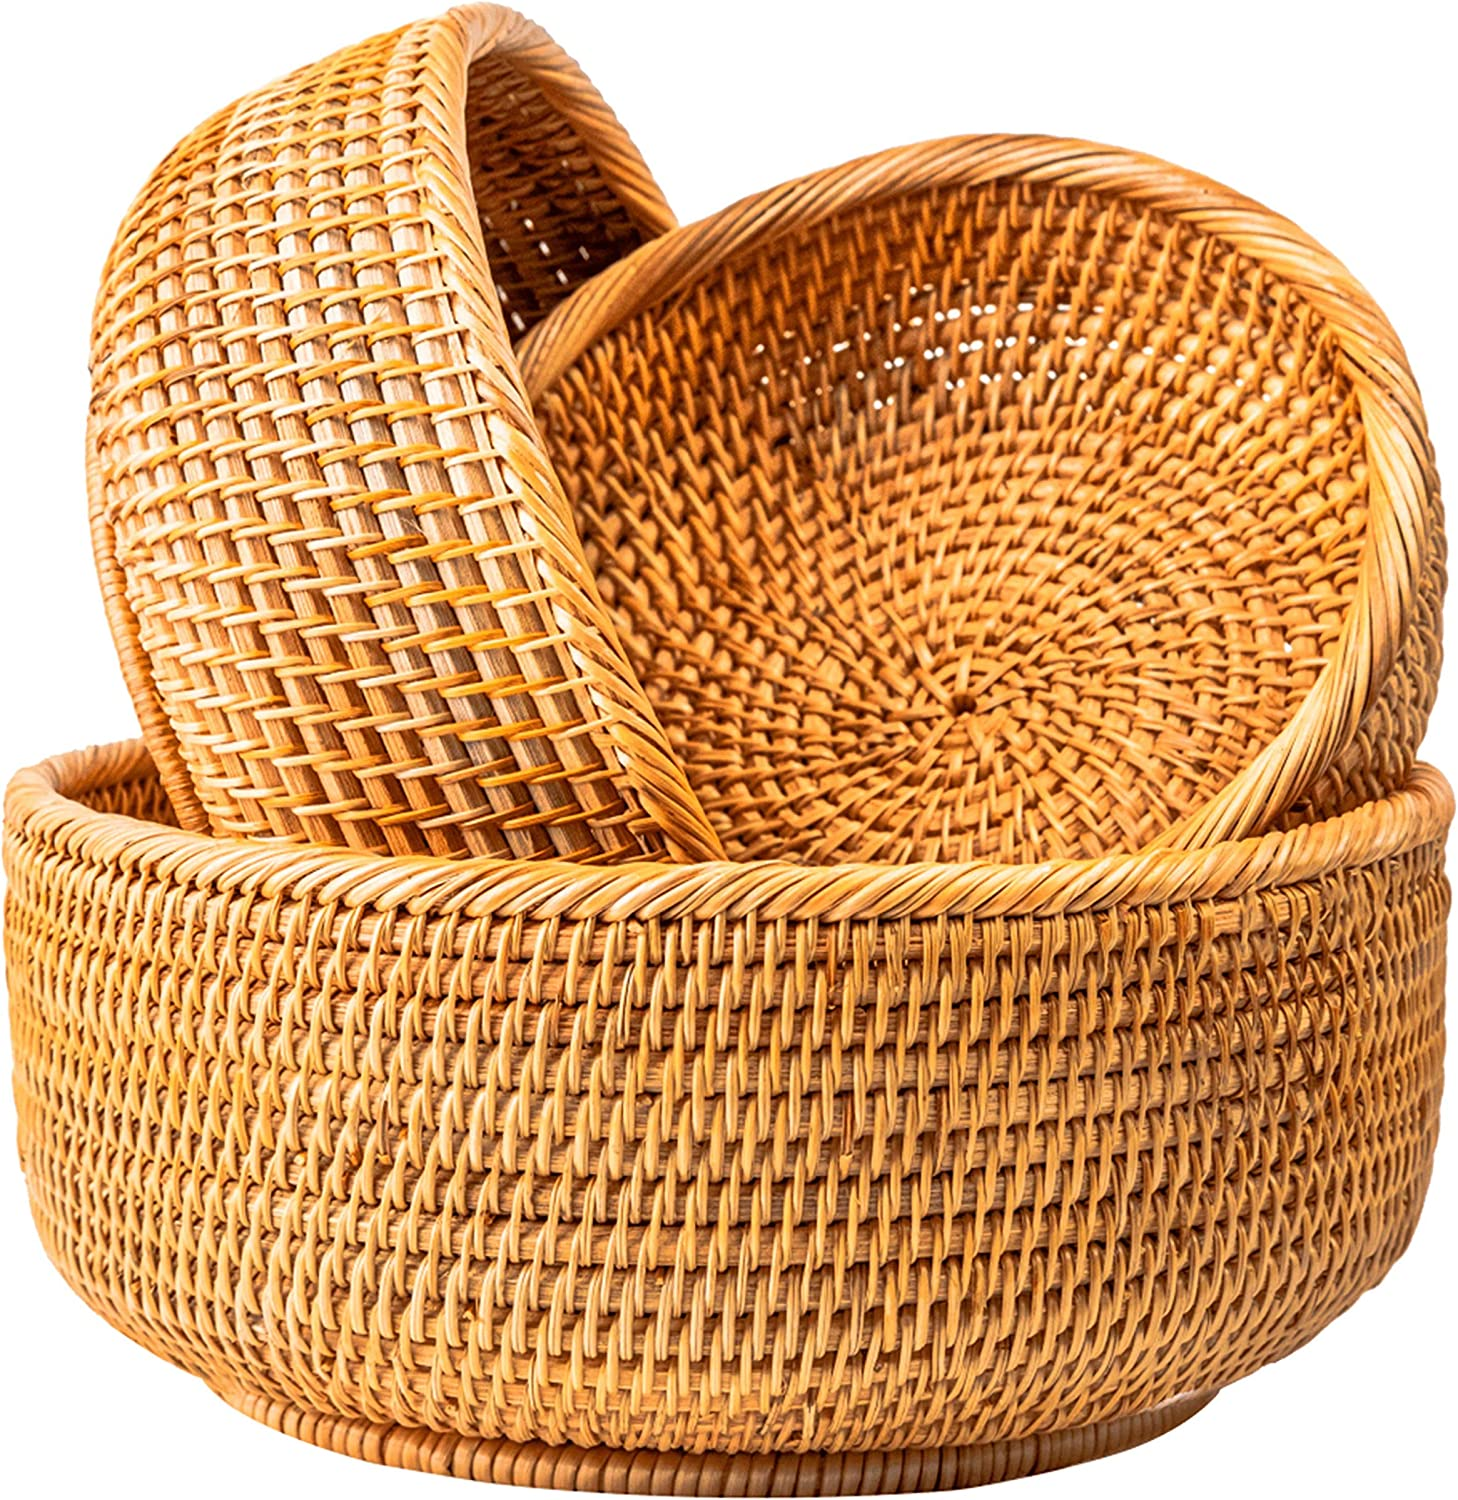 Wicker Woven Fruit Baskets For Bread Vegetable Bowl Food Storage Organizing Kitchen Counter Desk Countertop Small To Large Natural Rattan Round Basket Serving Bowls Chips Set of 3 (Honey Brown)